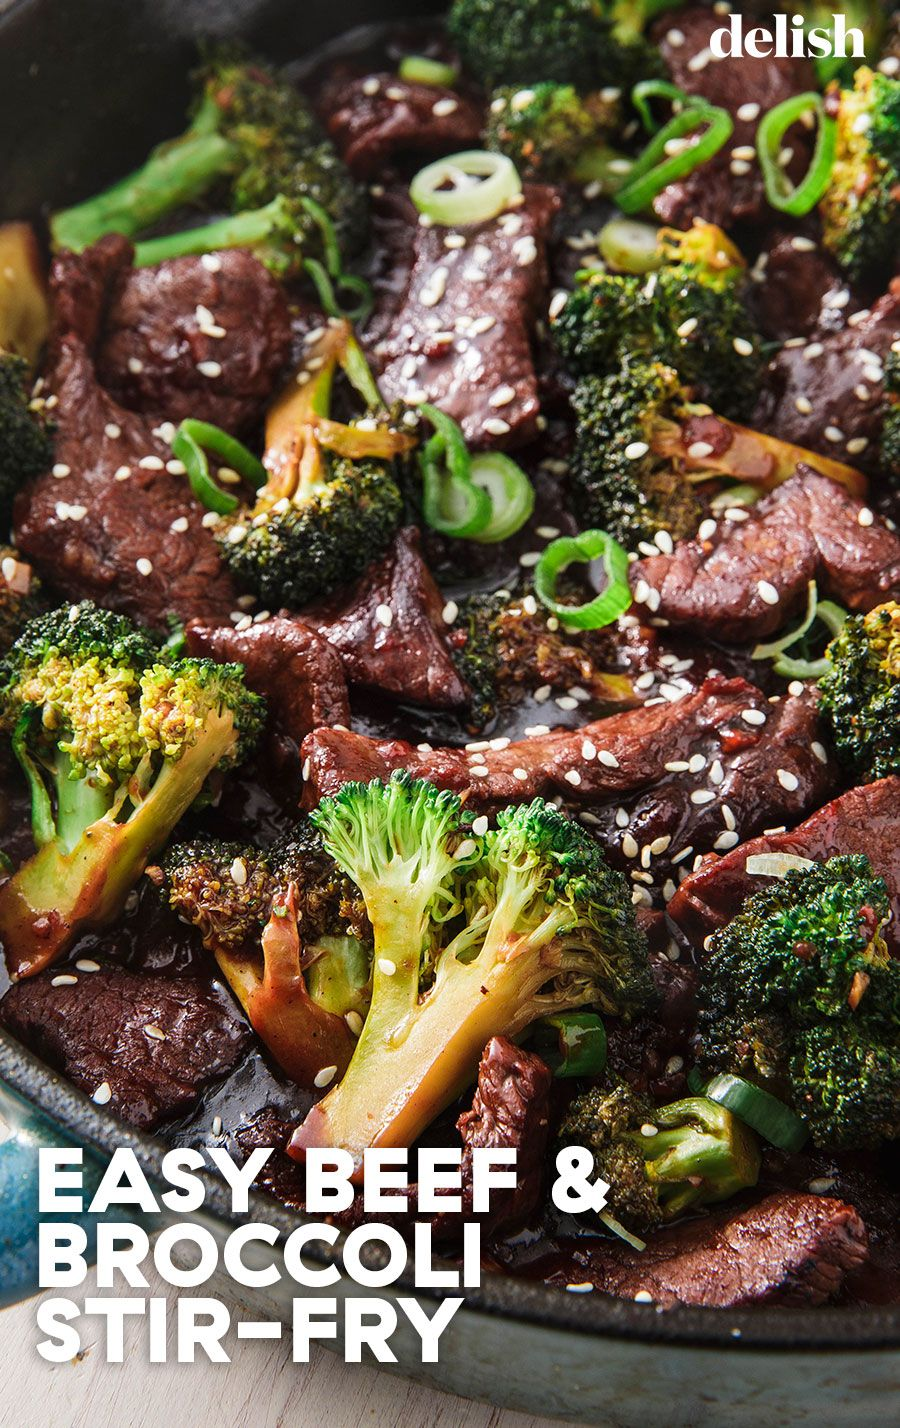 This Is Our Favorite Homemade Version Of Beef Broccoli Recipe Easy Beef And Broccoli Easy Chinese Recipes Beef Recipes Easy